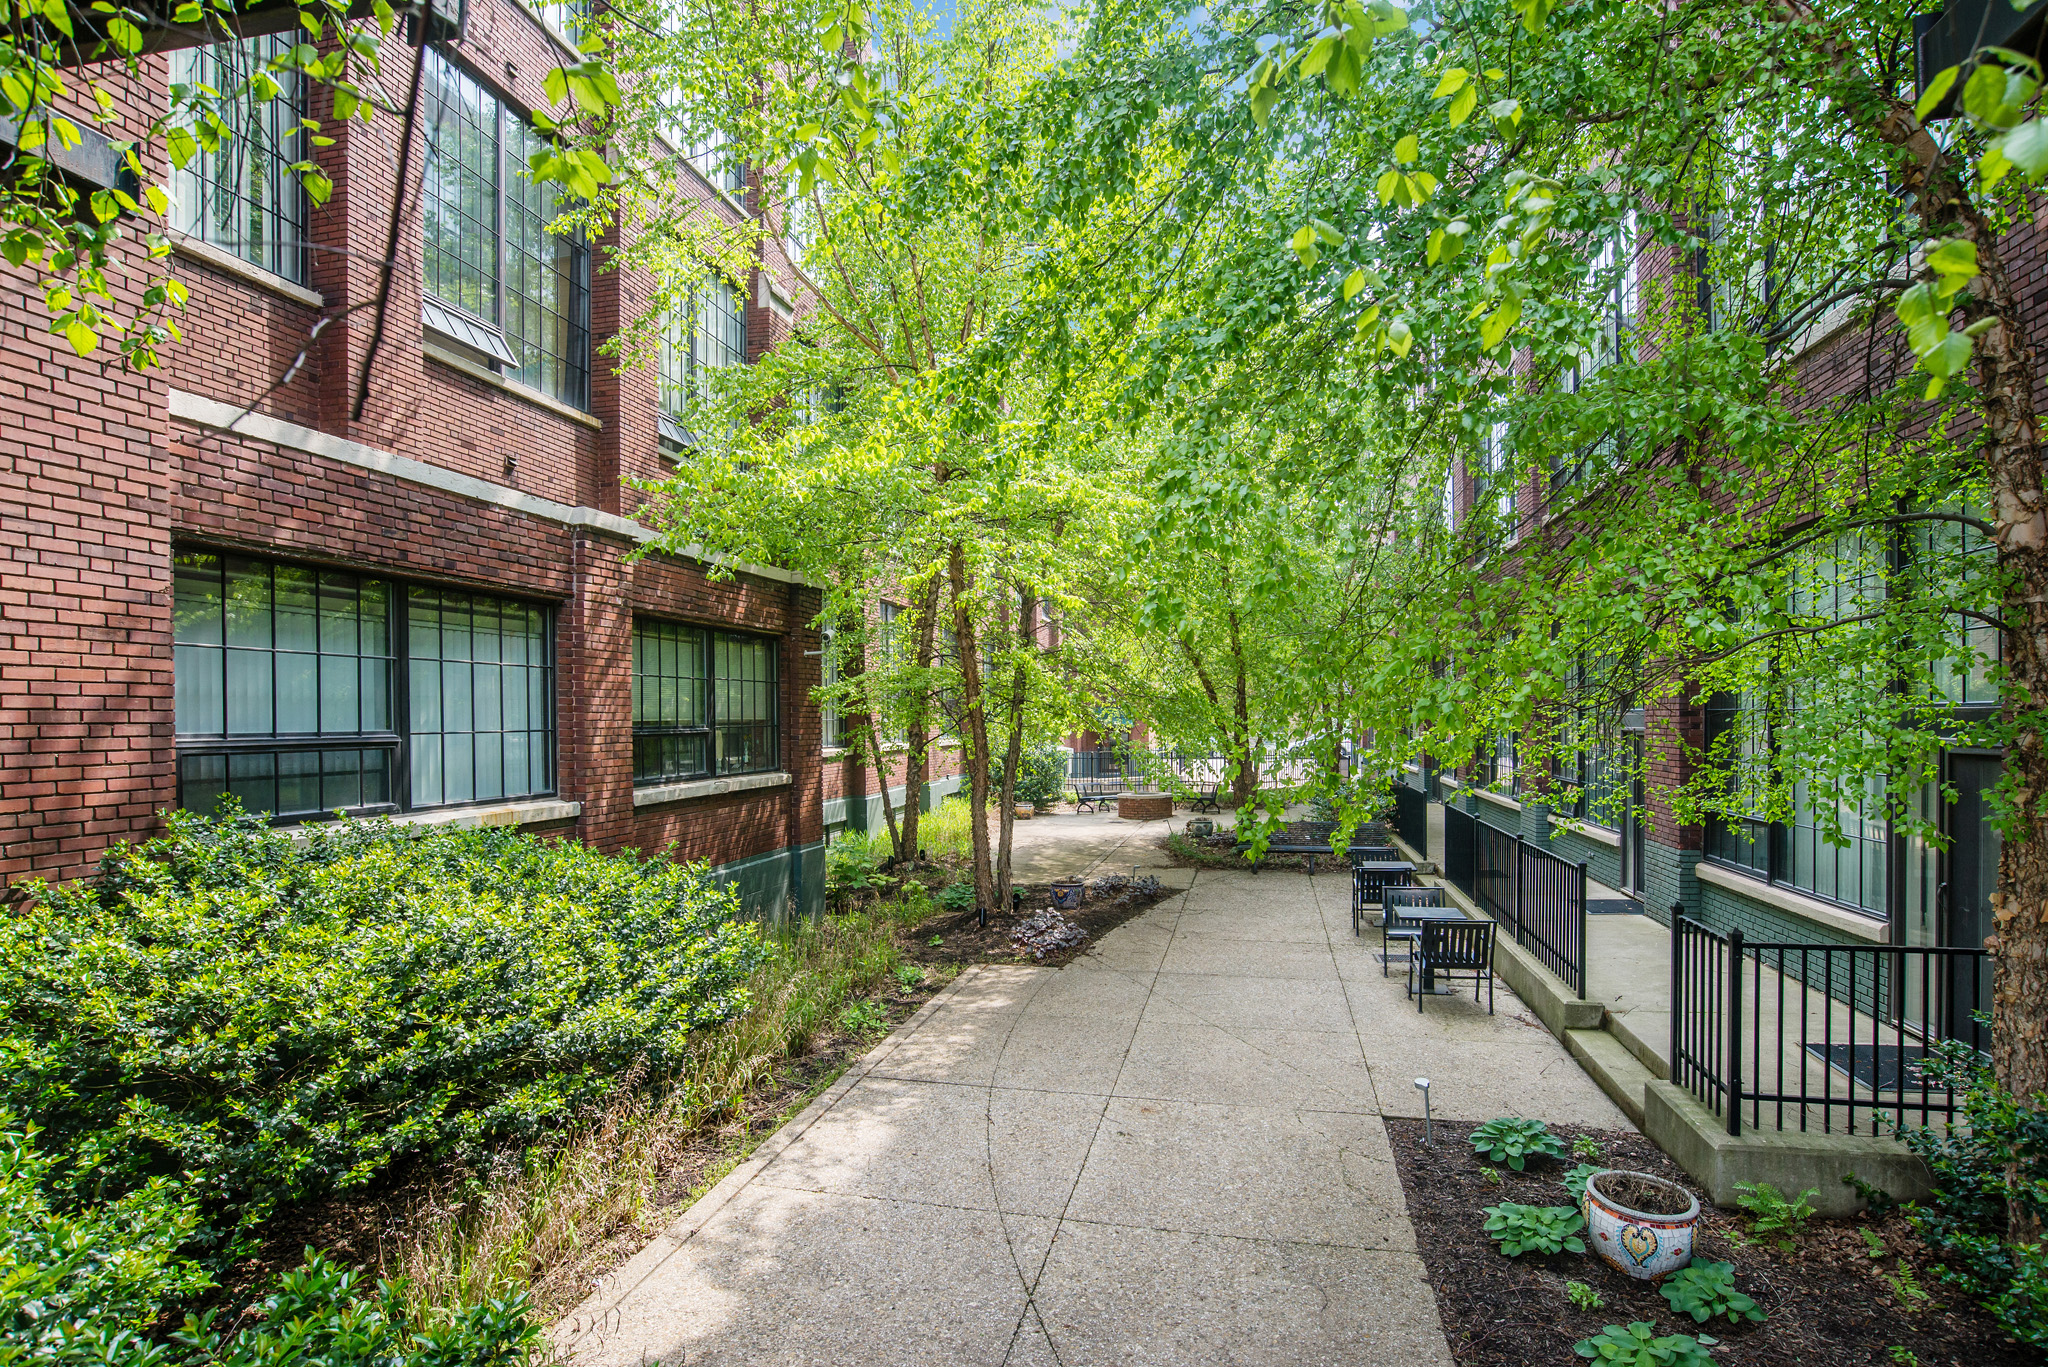 624 E Walnut Condo 46 Indpls IN 46204 Mill 9 Phase 1 - Mitch Rolsky with City Homes And Lifestyle (1 f)